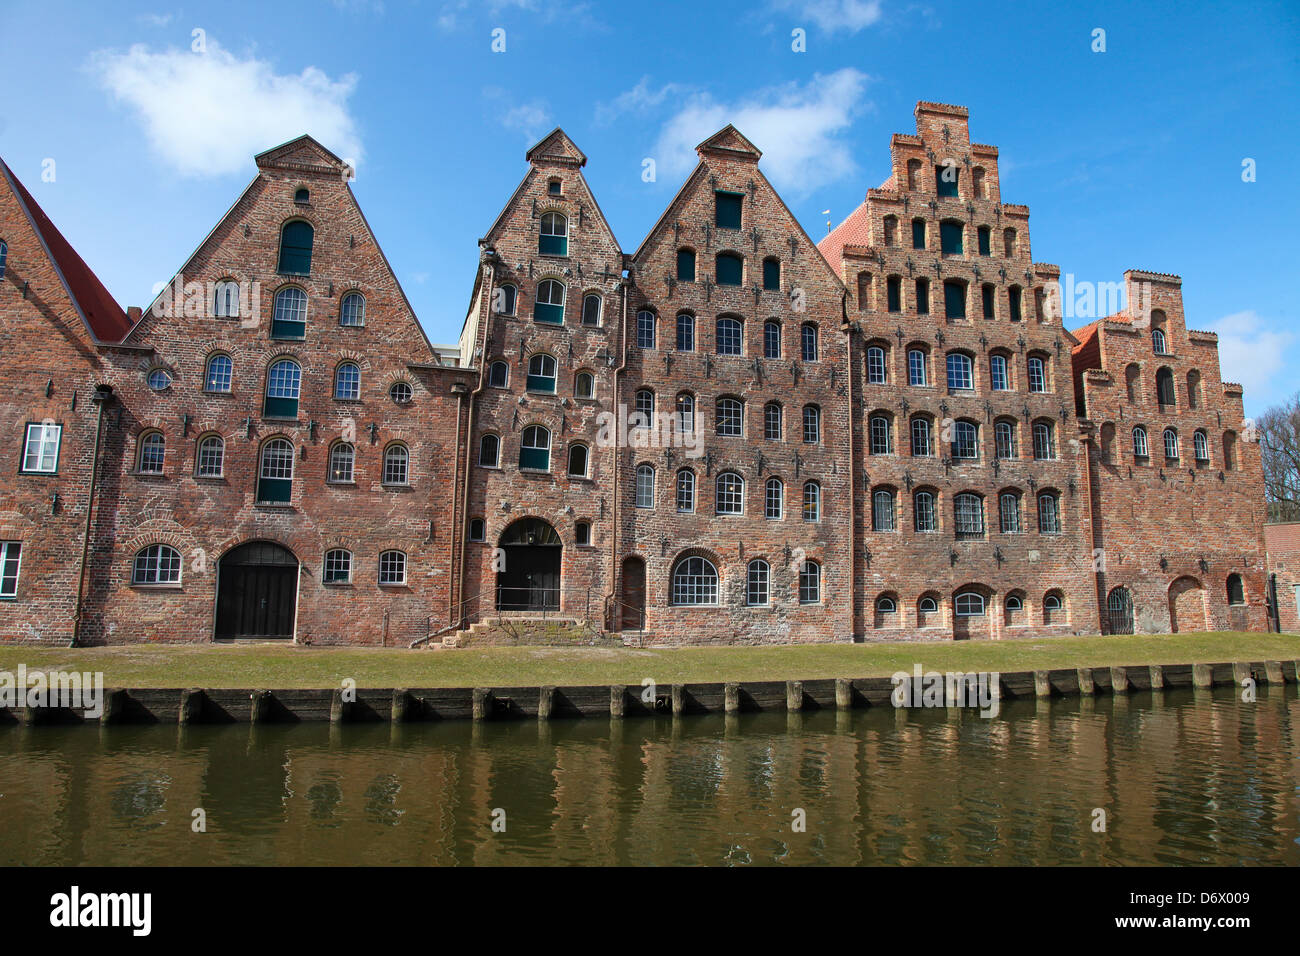 The Salzspeicher (salt storehouses) of Lübeck, Germany, are historic brick buildings on the Upper Trave River - Stock Image